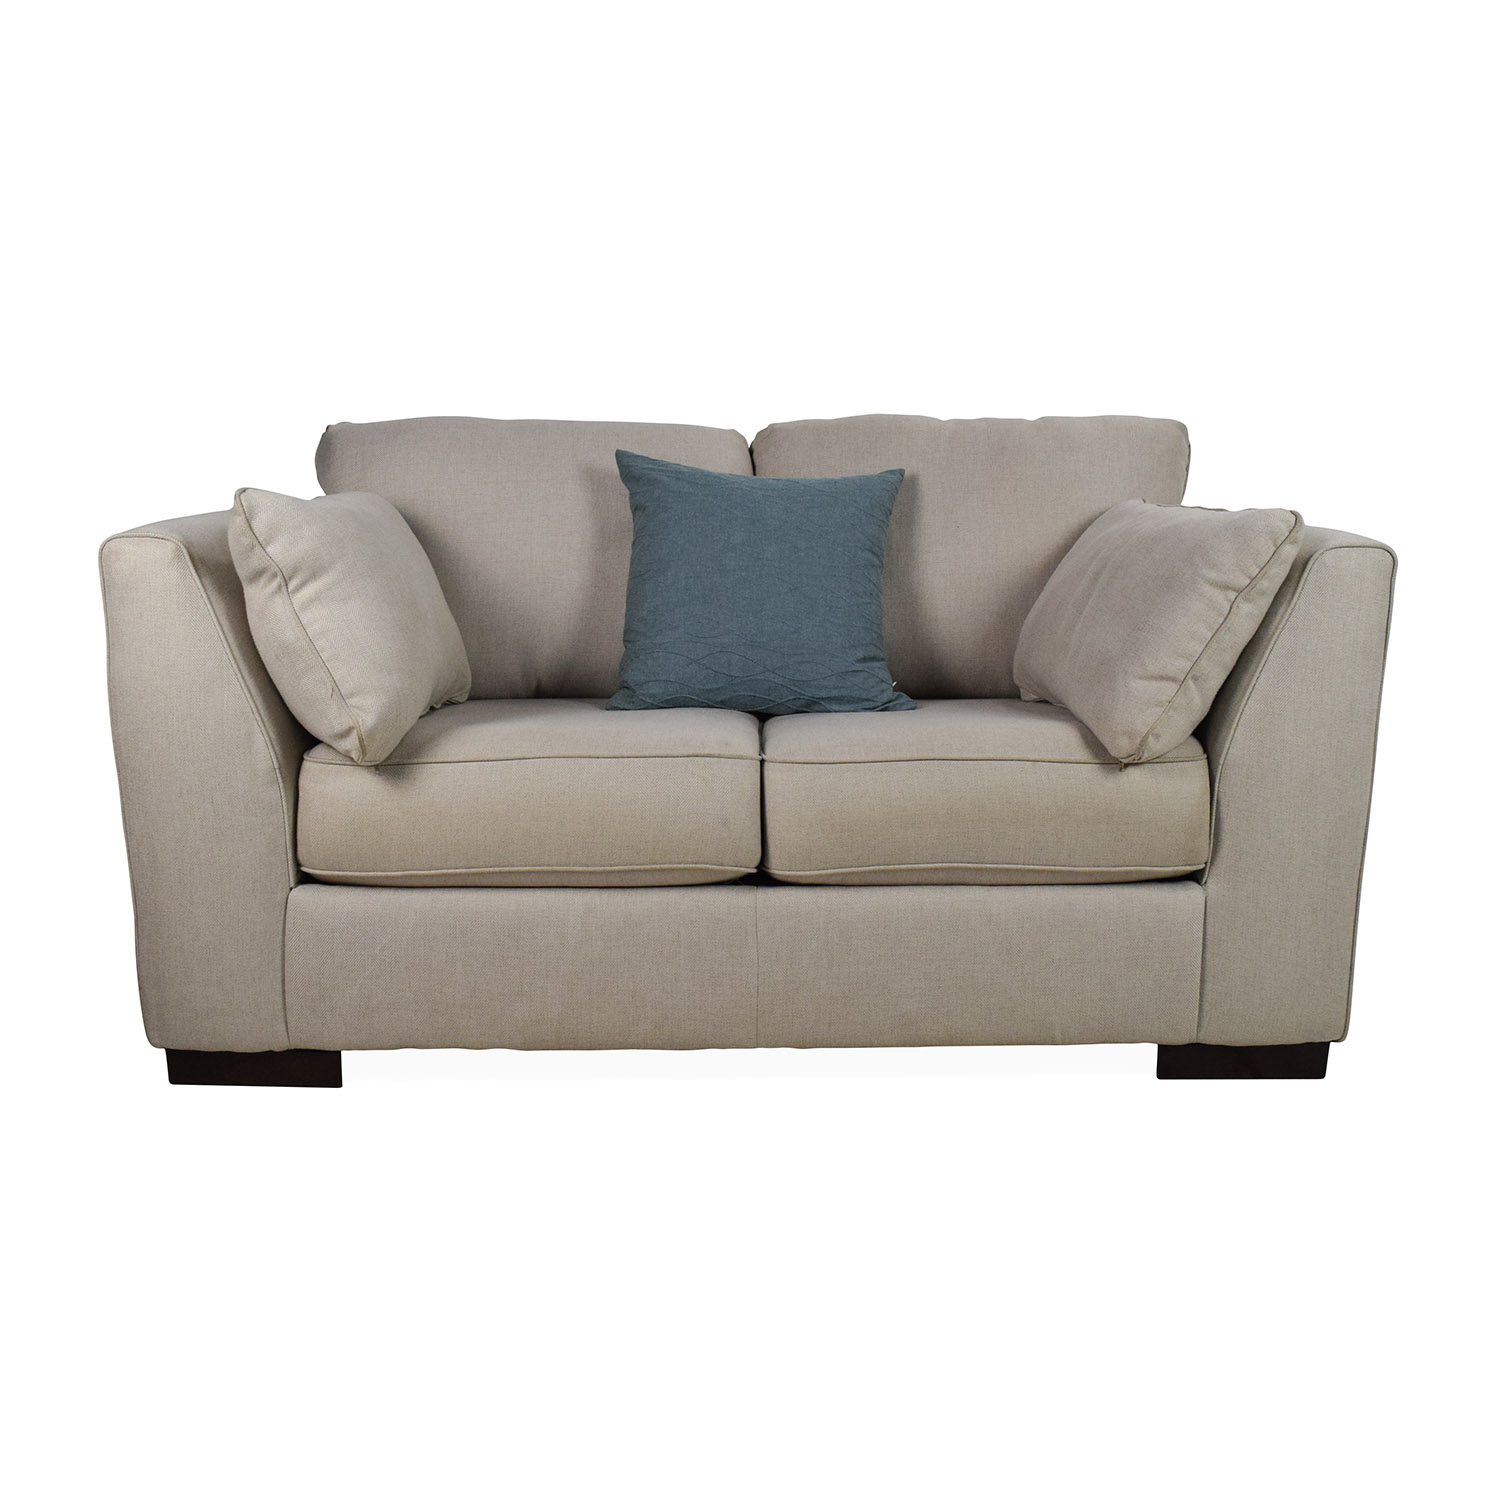 Ashley Furniture Ashley Furniture Pierin Loveseat Price ...